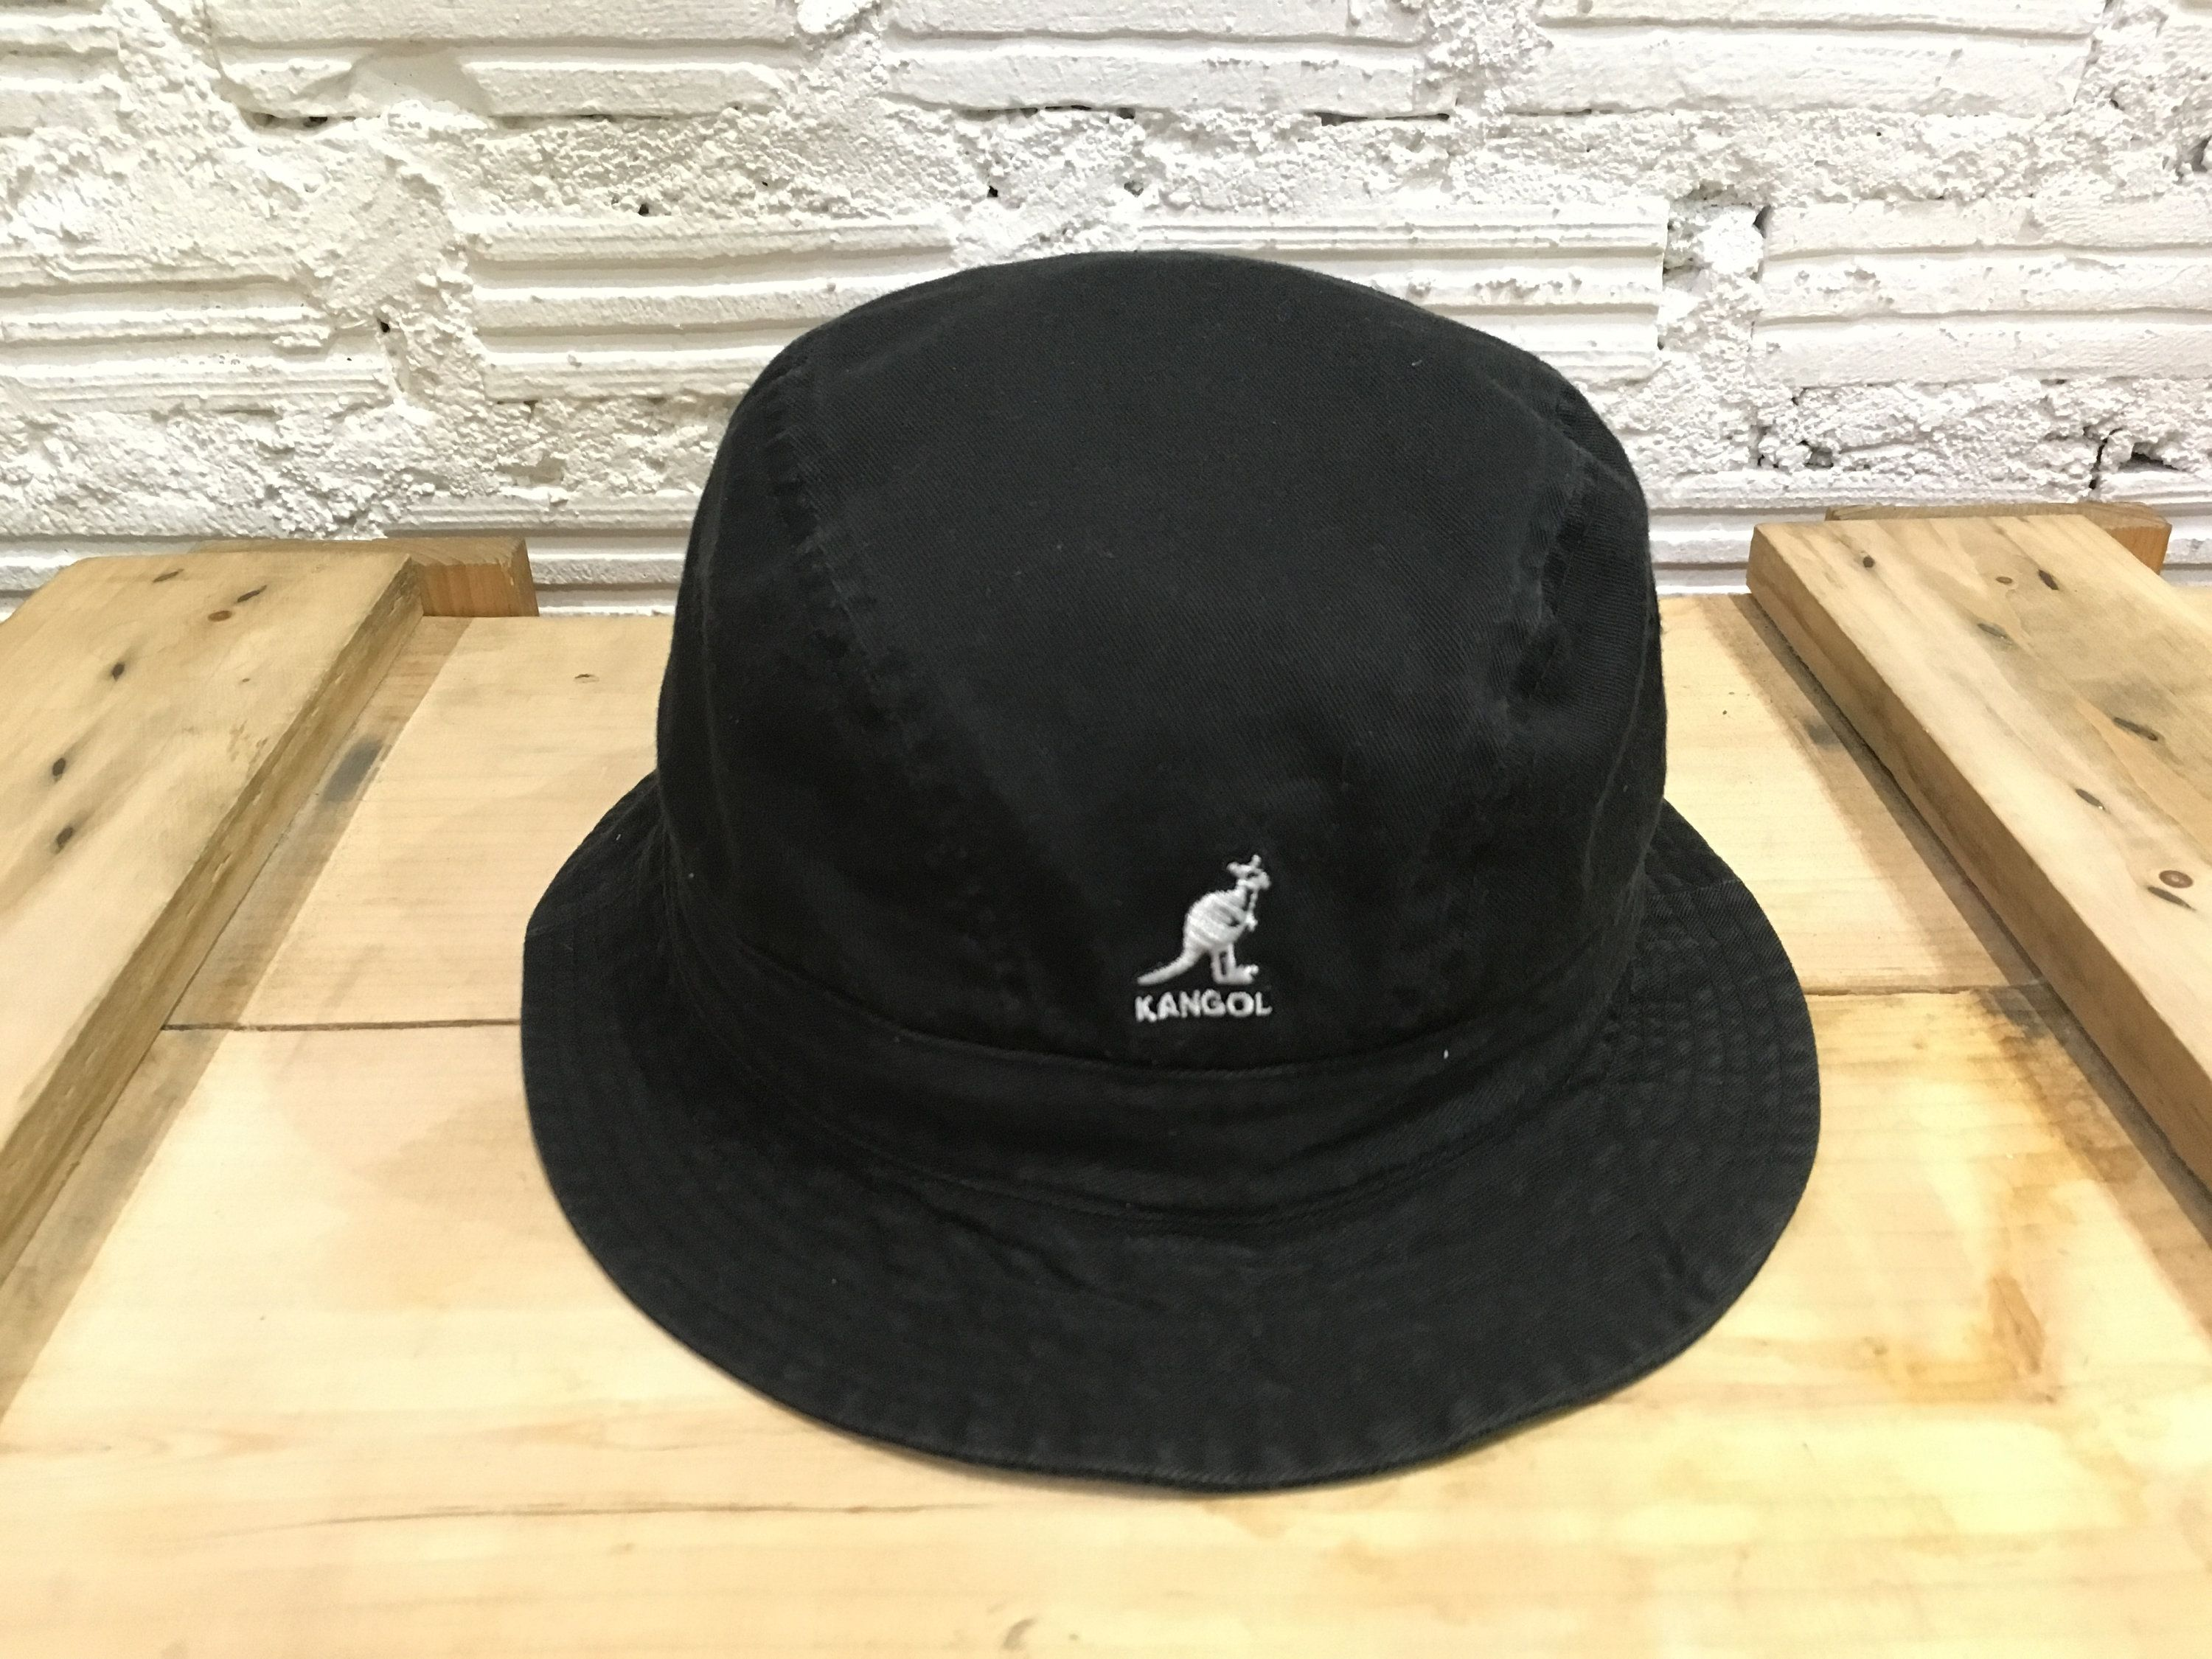 8e6b06ad506fc Vintage Kangol bucket hat embroidered logo Black Size M Excellent condition  by AlivevintageShop on Etsy